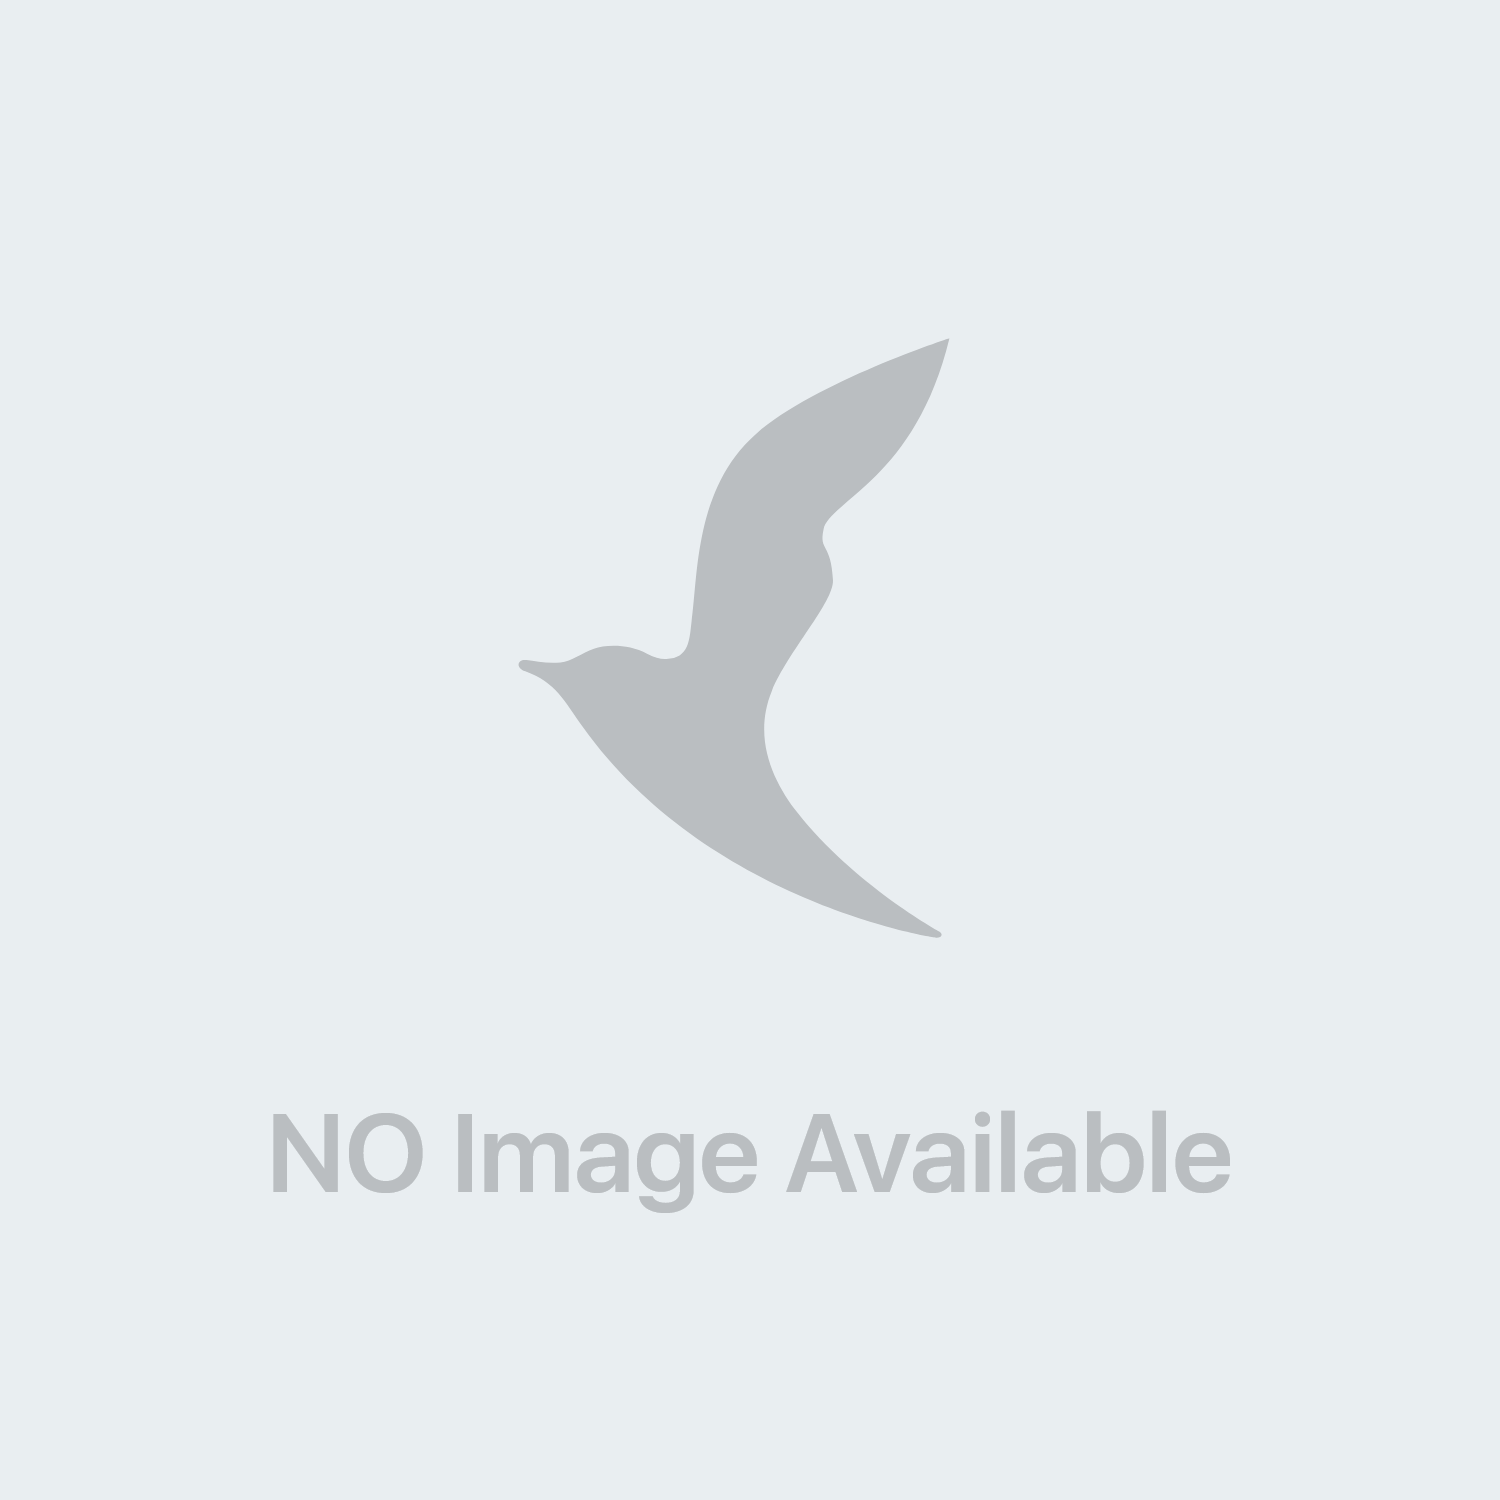 Ibuprofene Sandoz 12 Compresse Rivestite 200 mg